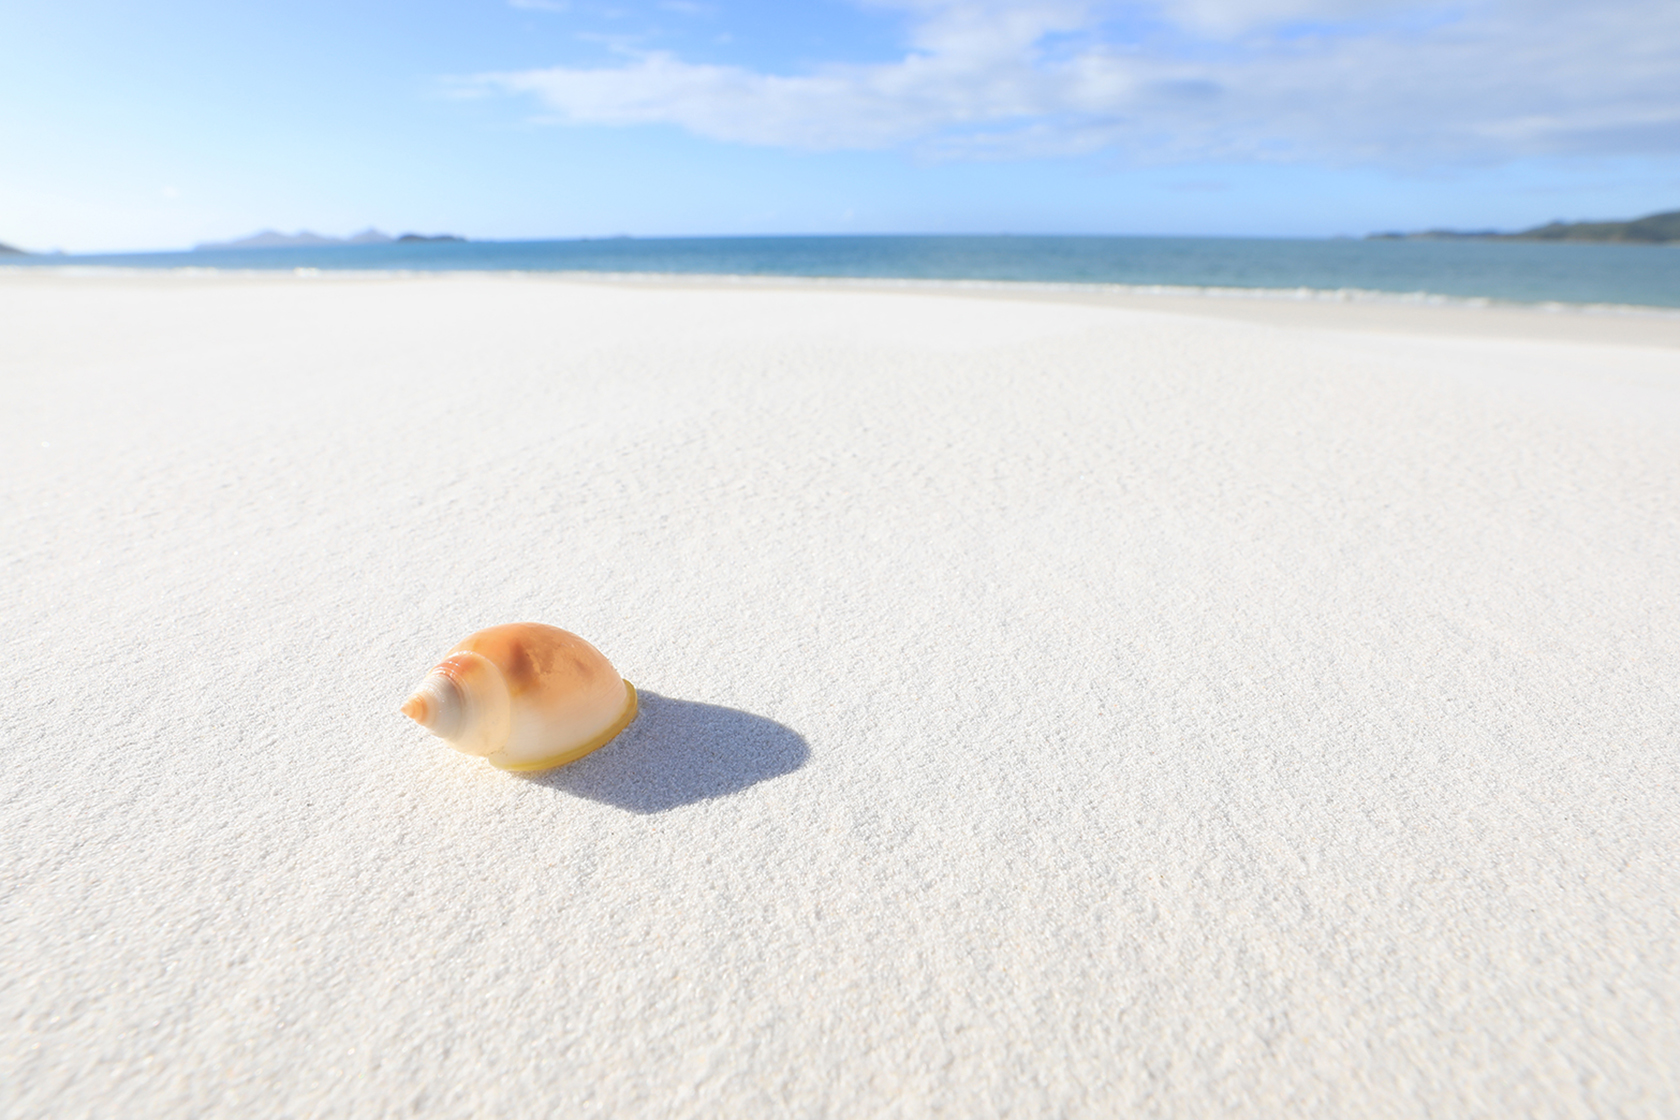 Shell on white sand